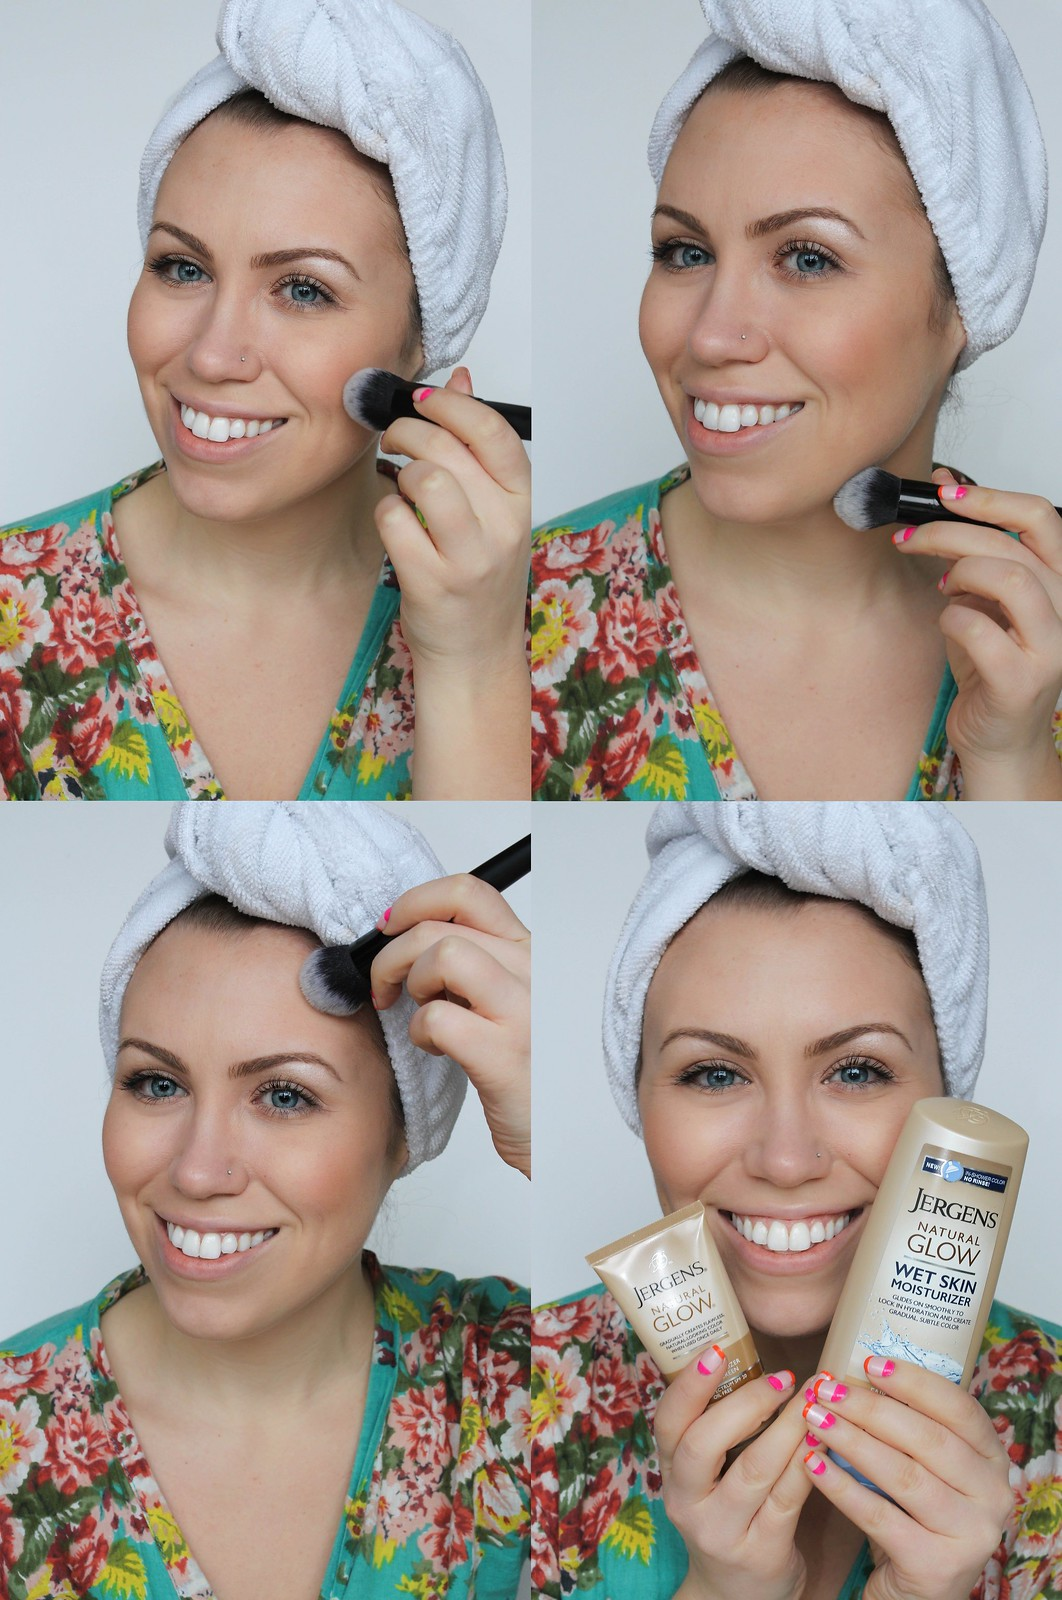 How to Apply Jergens Natural Glow Face Daily Moisturizer and Wet Skin Moisturizer